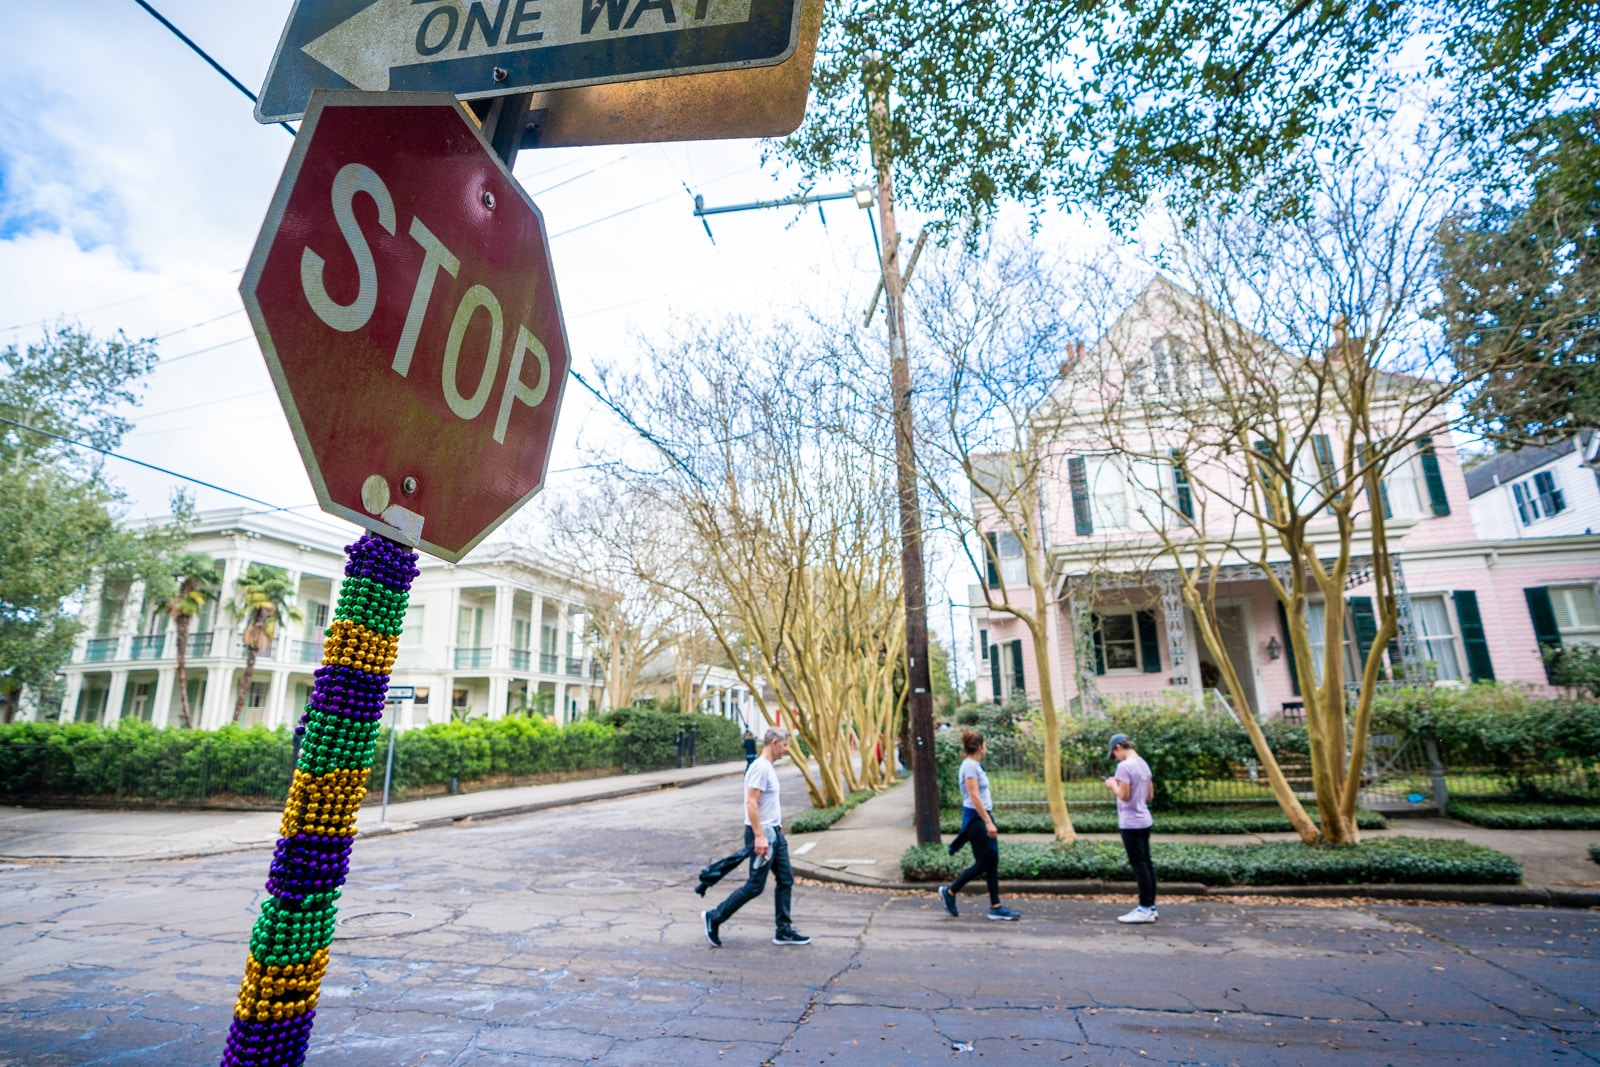 Mardi Gras beads on a stop sign in a residential part of the Garden District